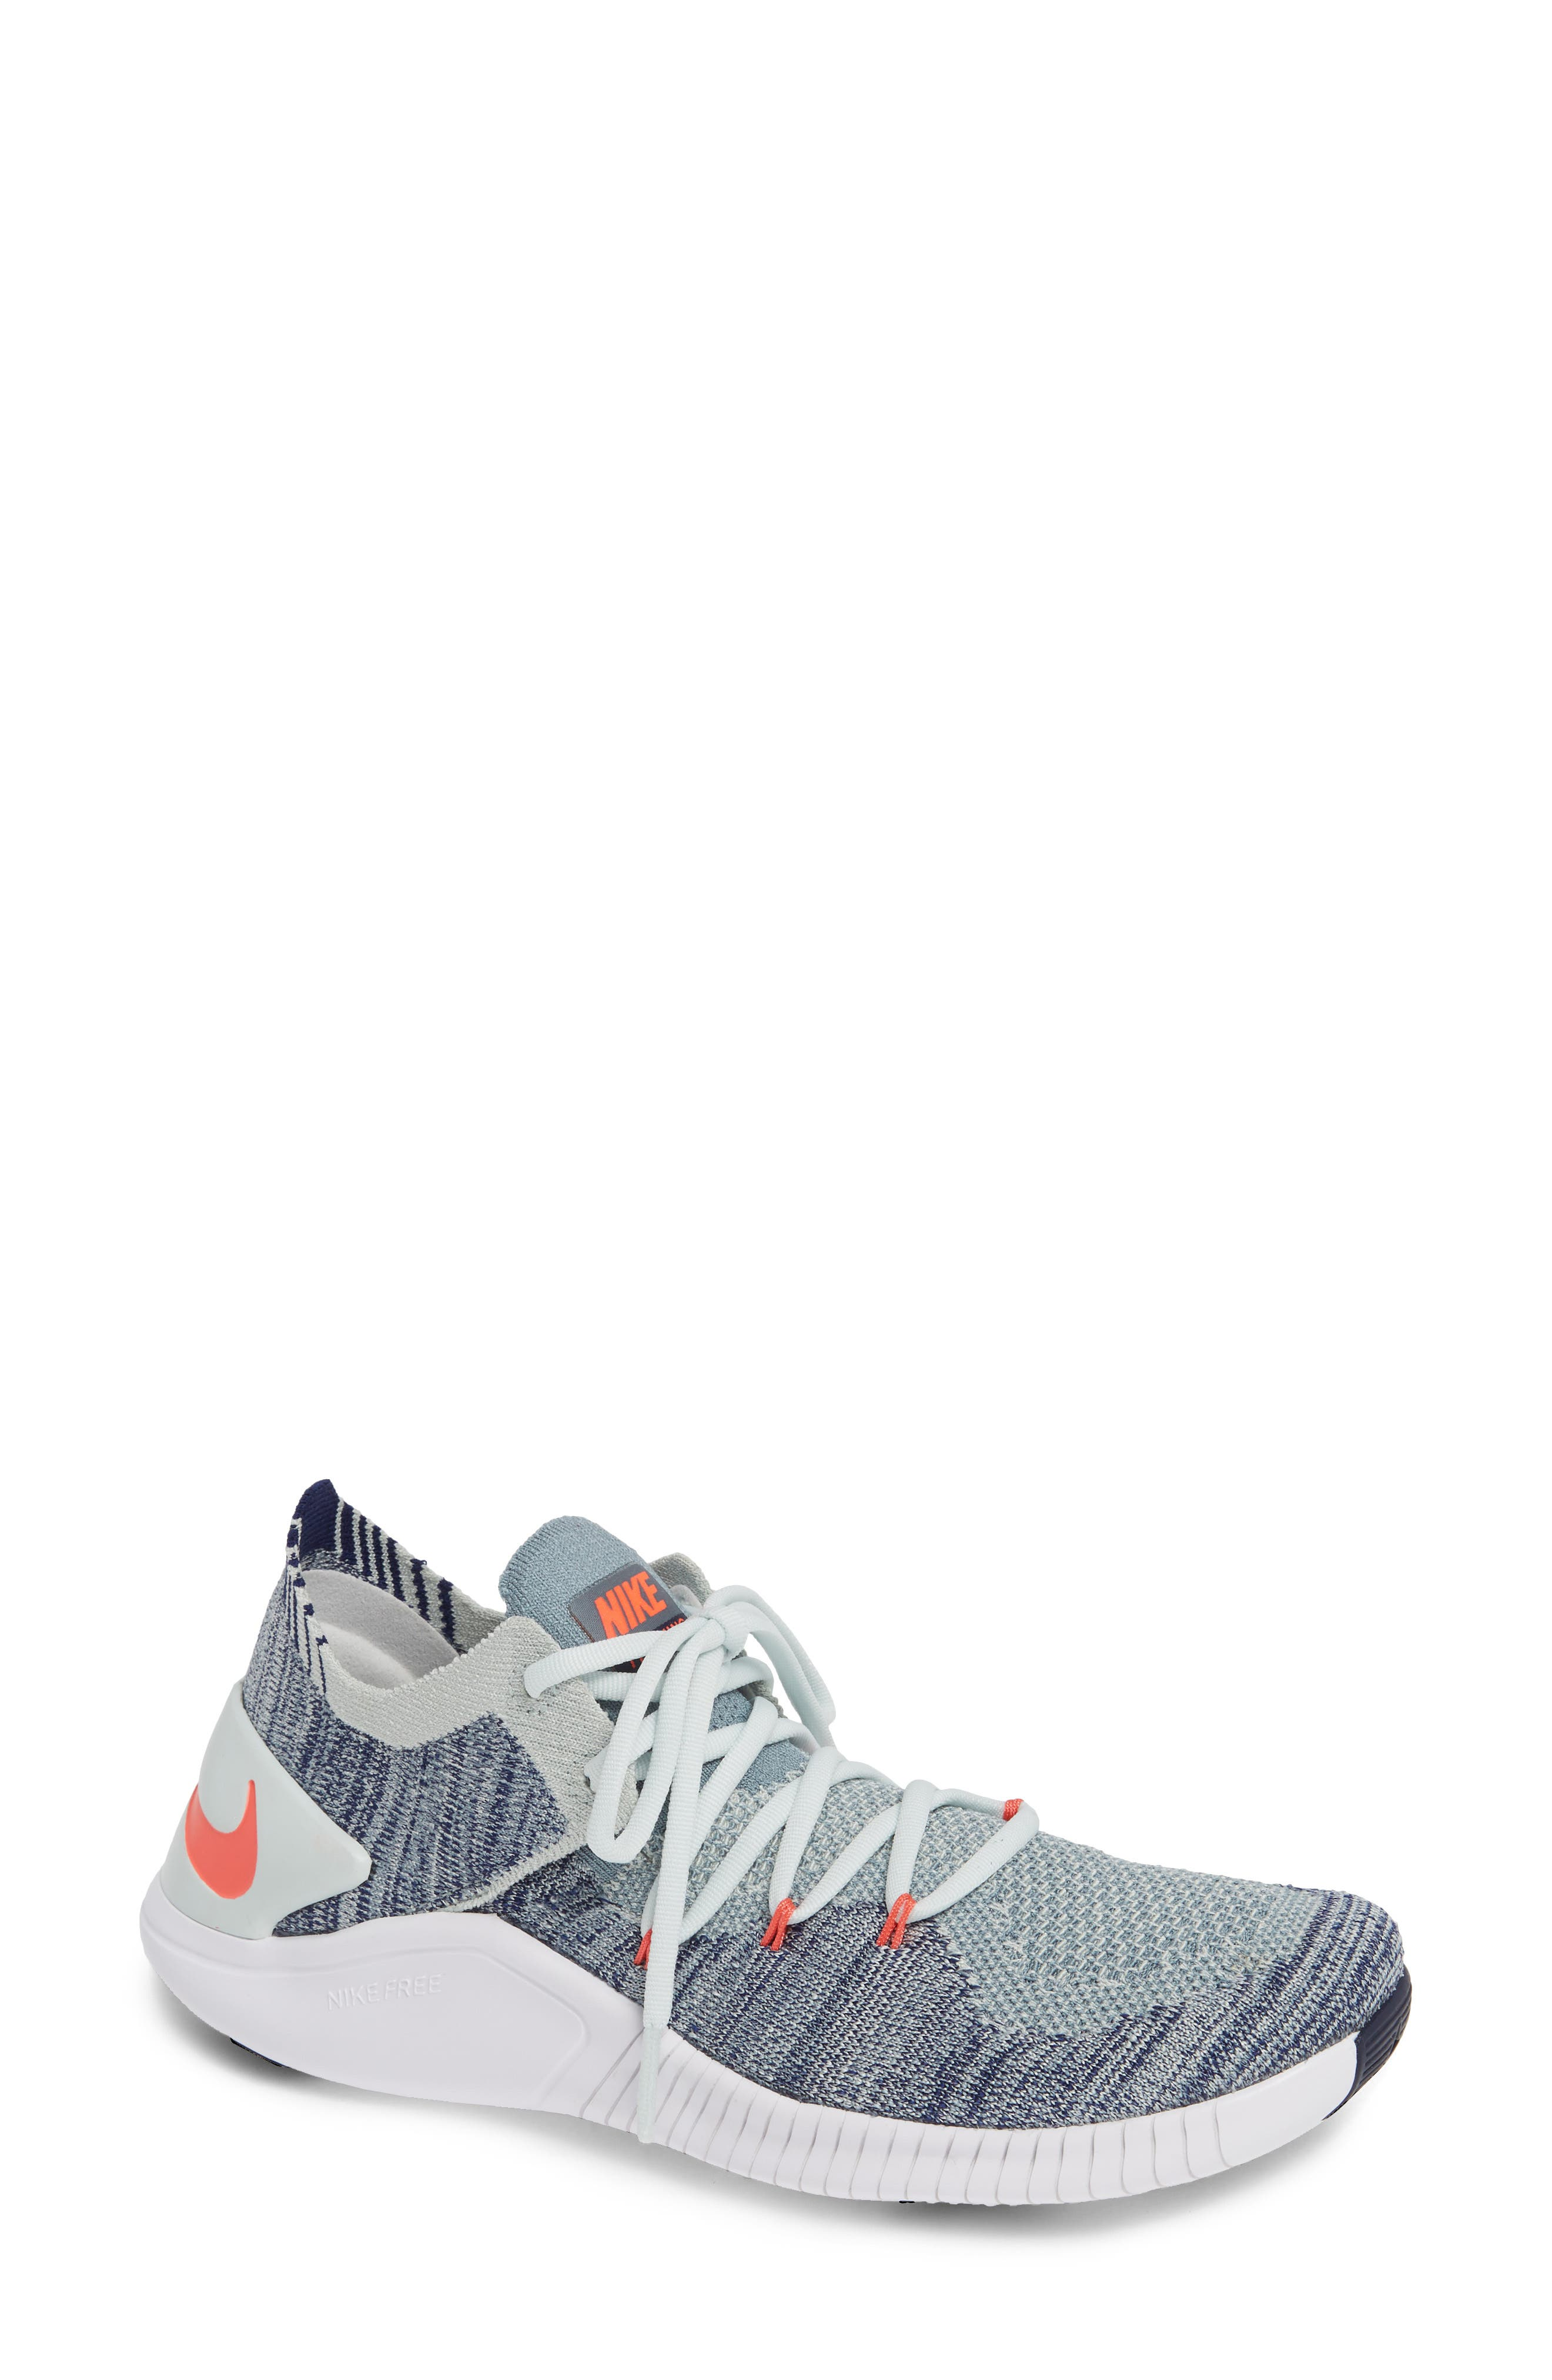 Free TR Flyknit 3 Training Shoe,                             Main thumbnail 1, color,                             BARELY GREY/ EMBER GLOW/ BLUE